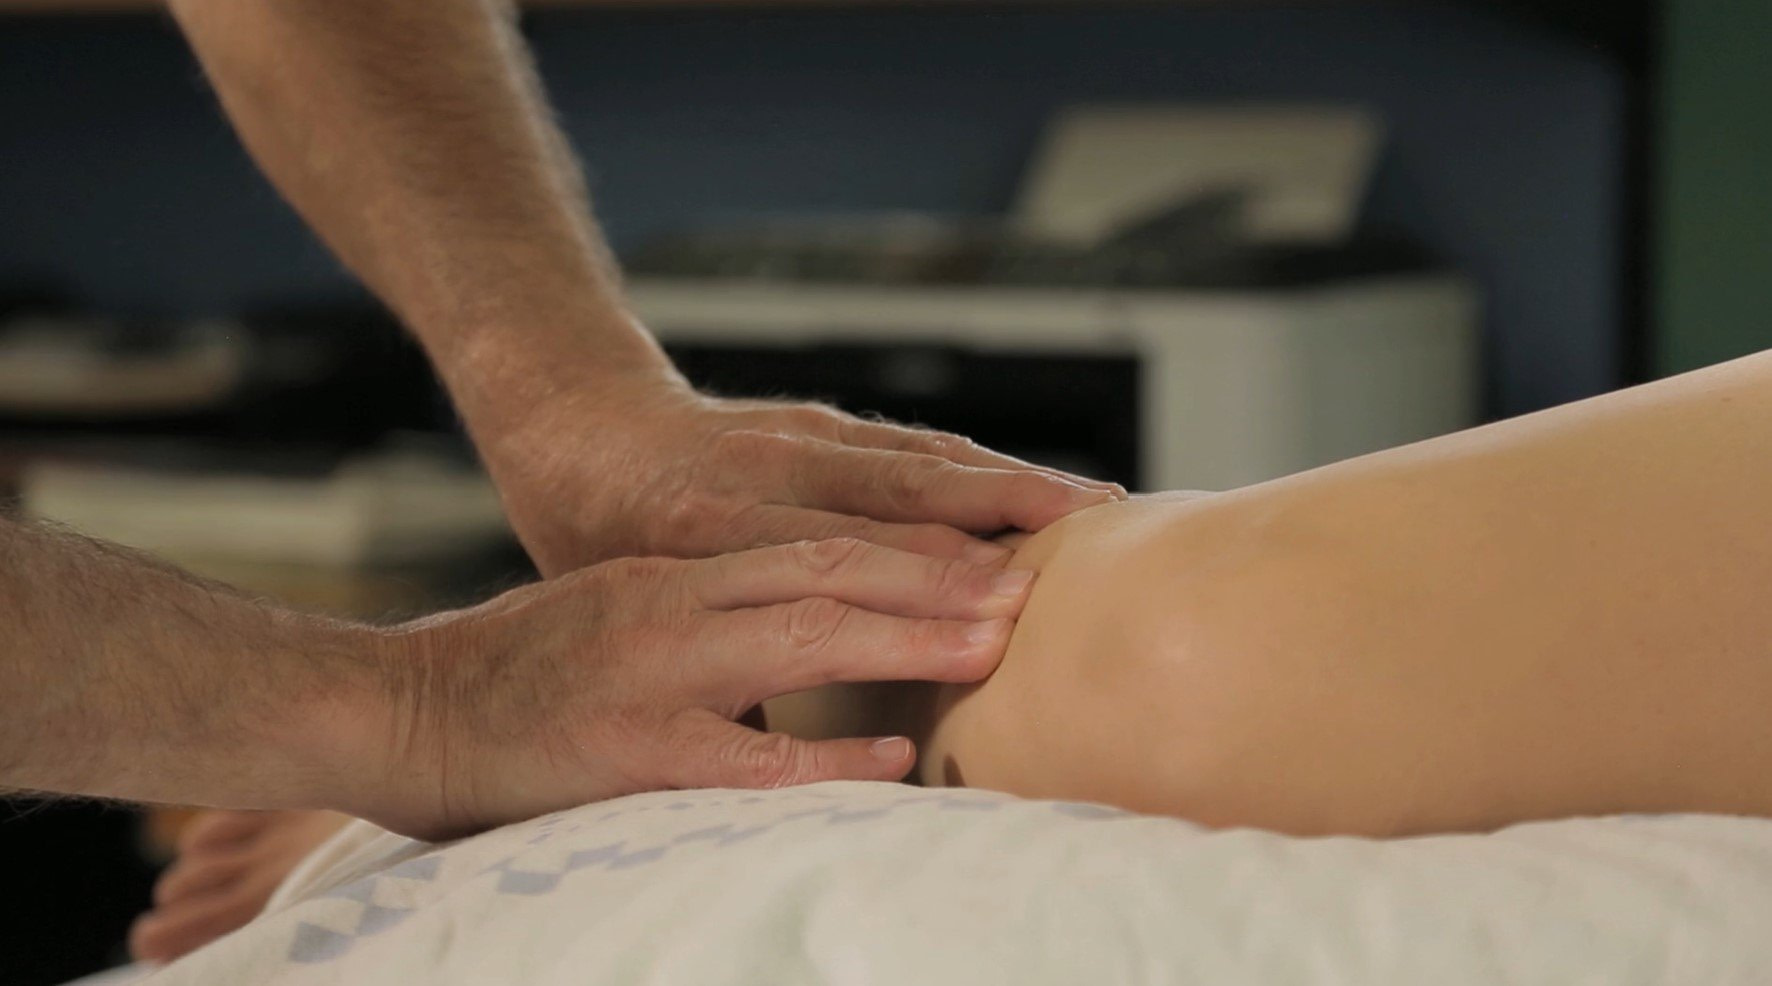 Intrduction to Rolfing